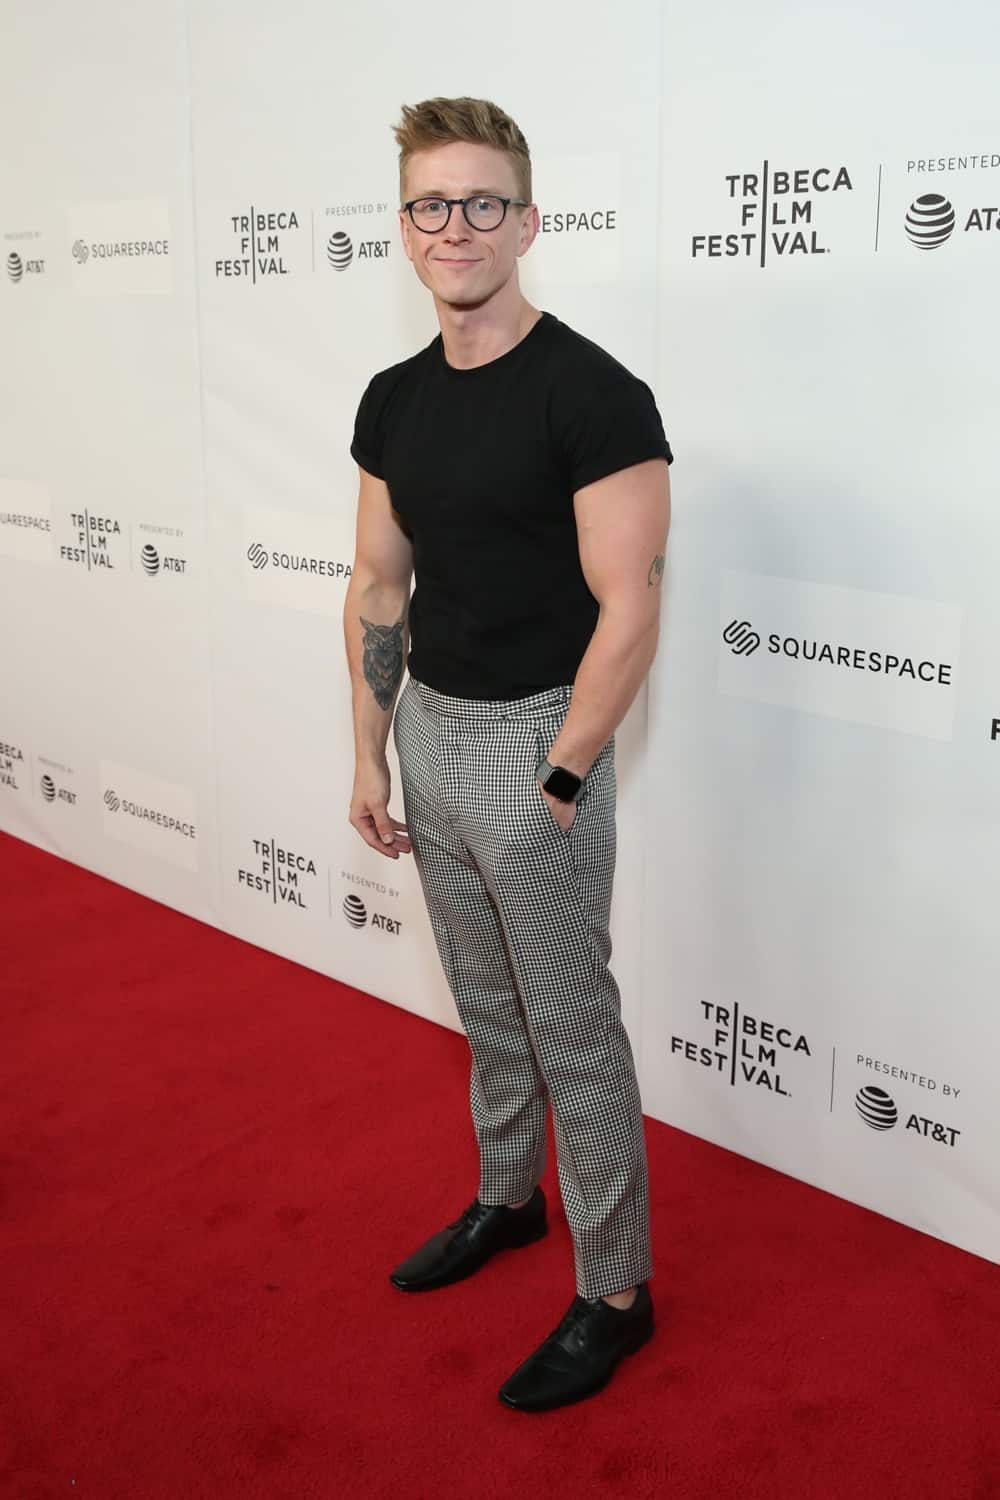 Tyler Oakley World Premiere Of 'GAY CHORUS DEEP SOUTH' Documentary, Developed And Produced By Airbnb At The 2019 Tribeca Film Festival